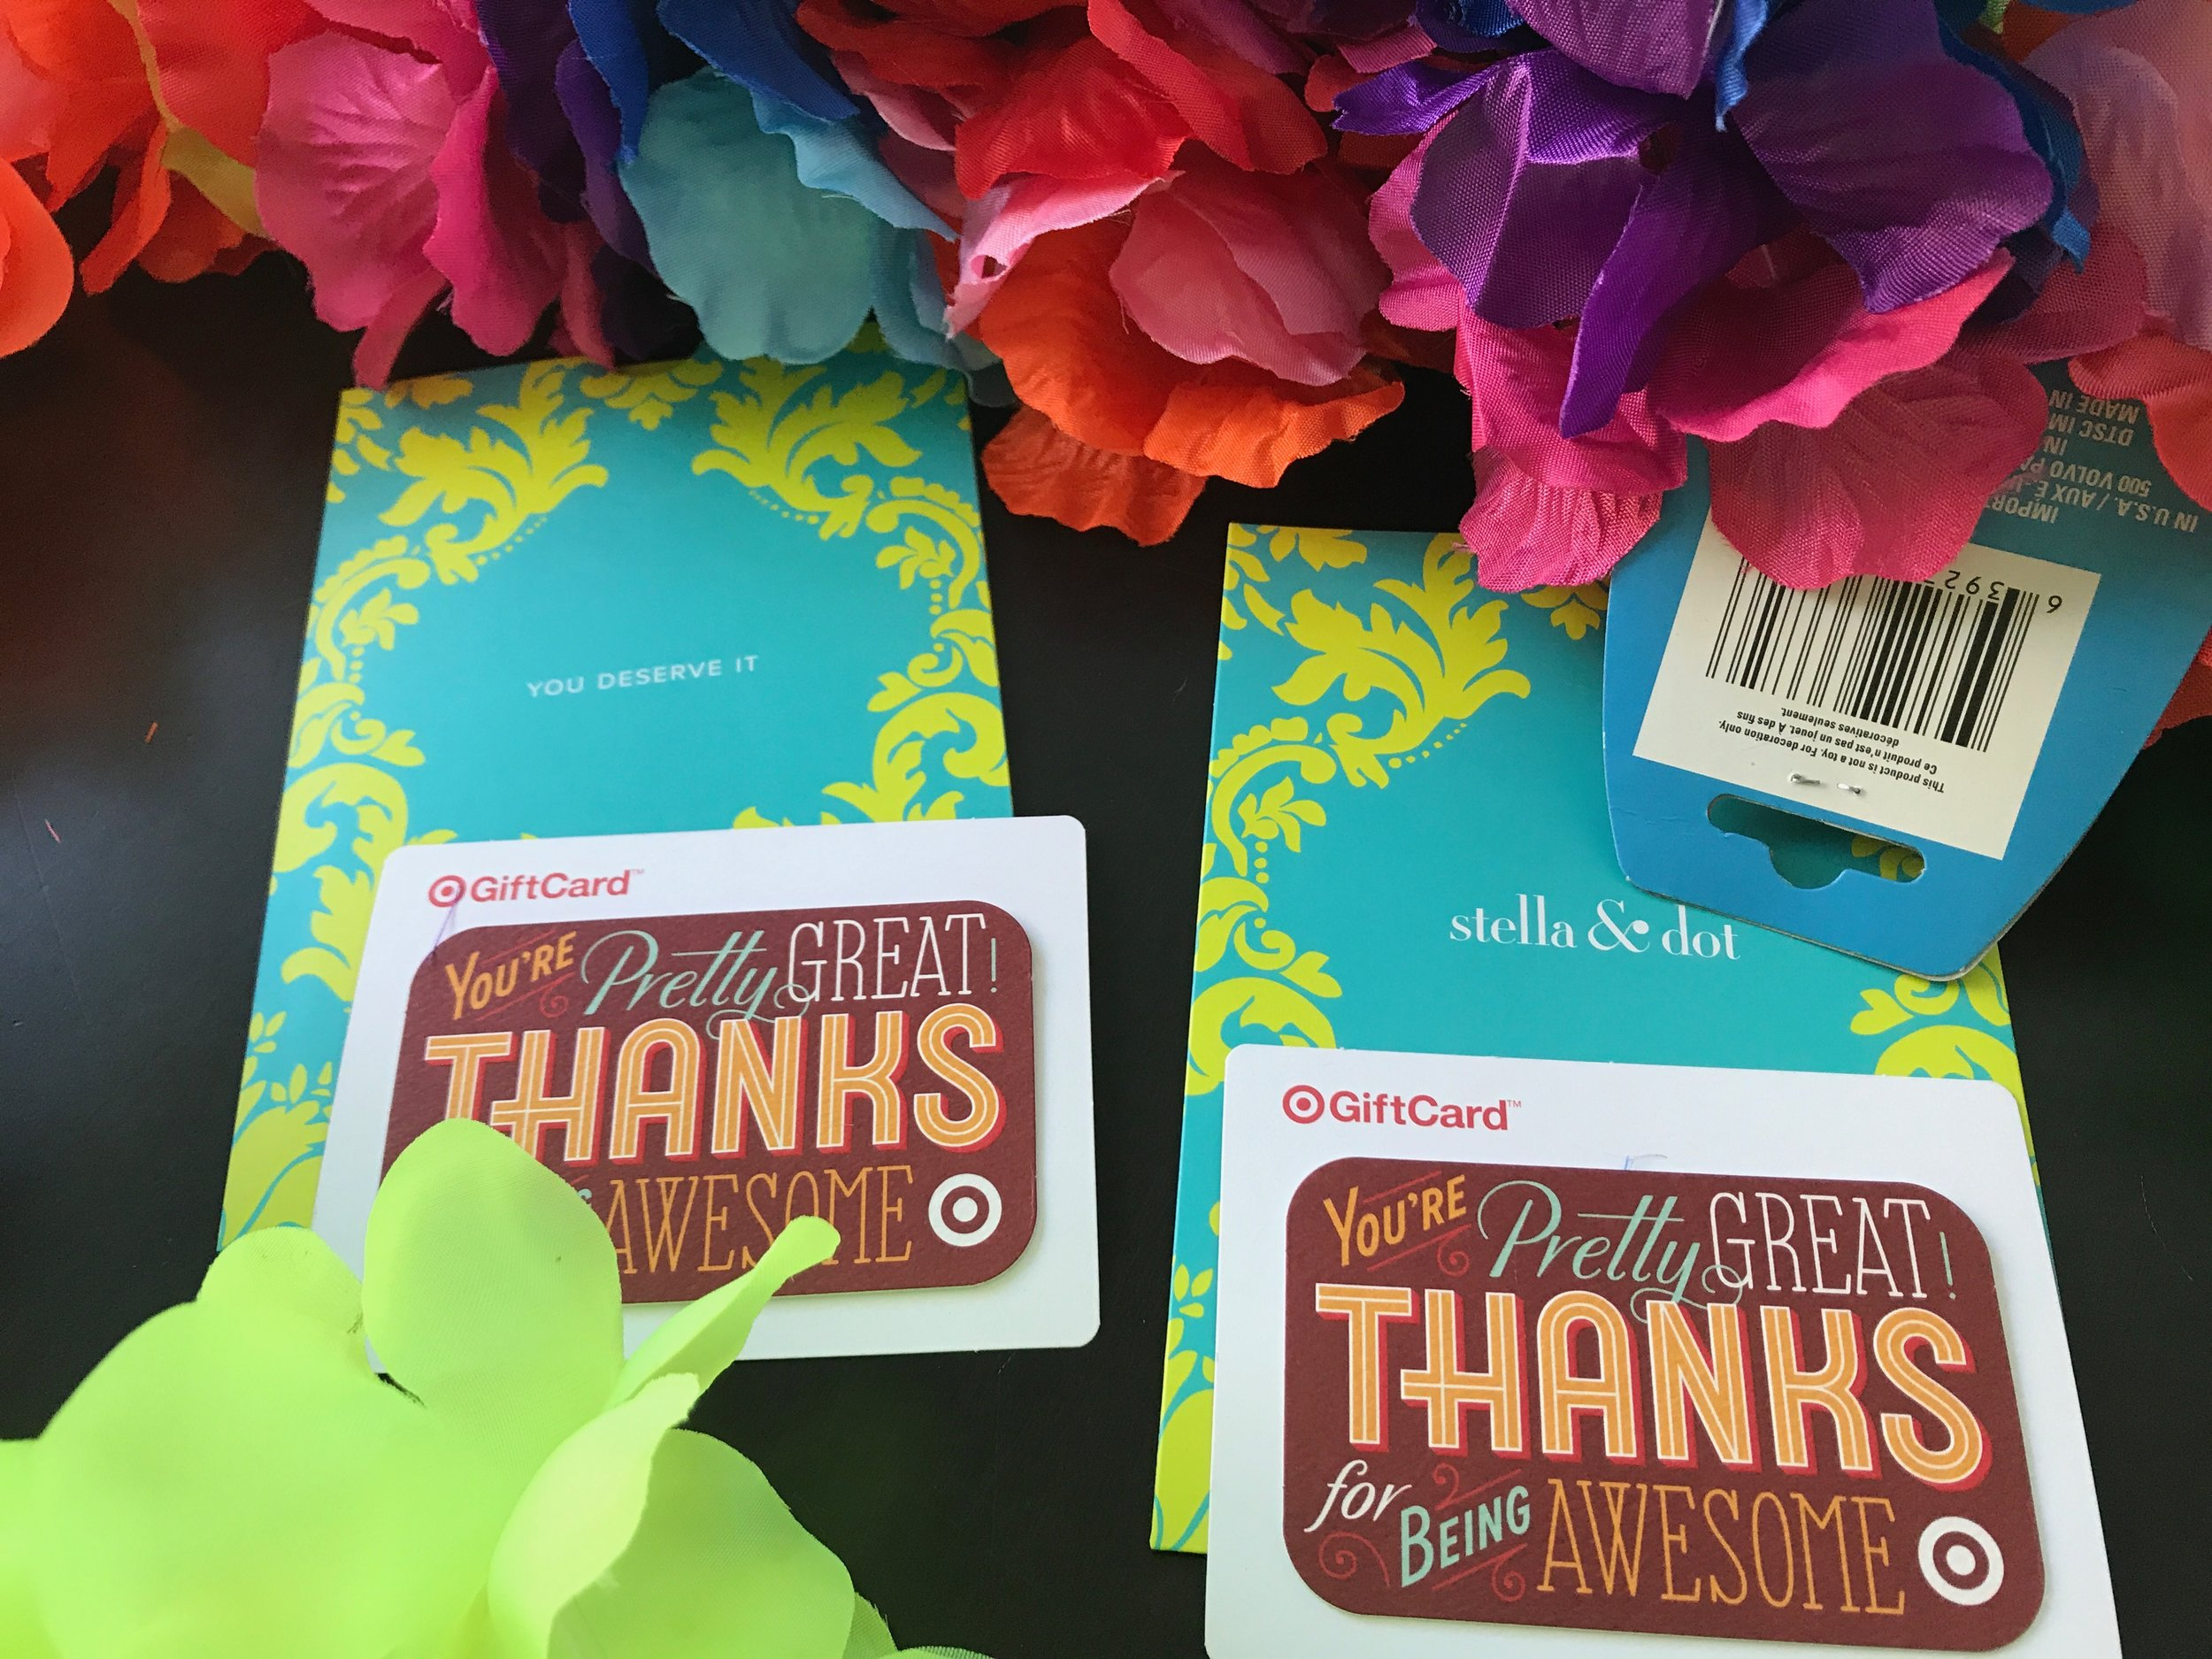 Instead of cash, we attached gift cards onto the leis.